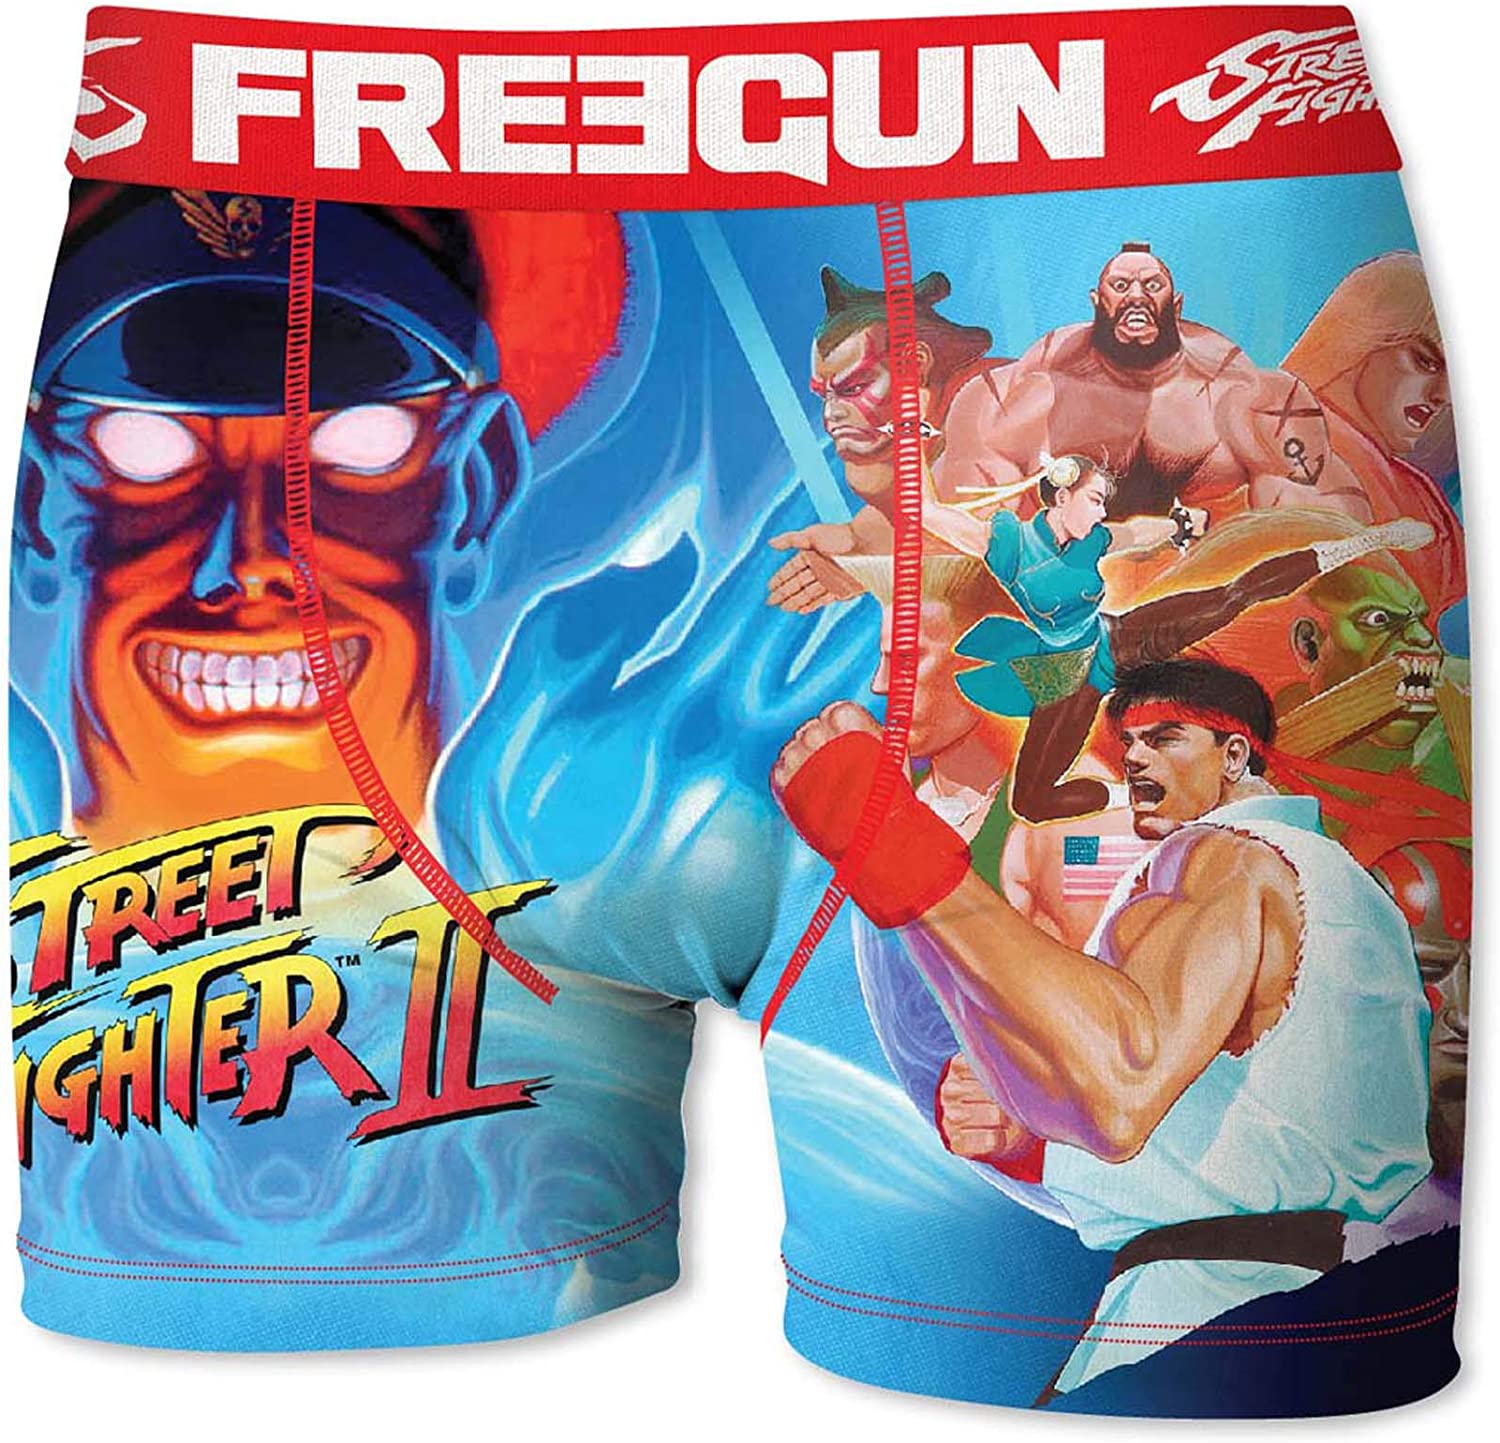 Sublimation Printing FREEGUN Set Boxers Briefs Street Fighter Man OR Boy